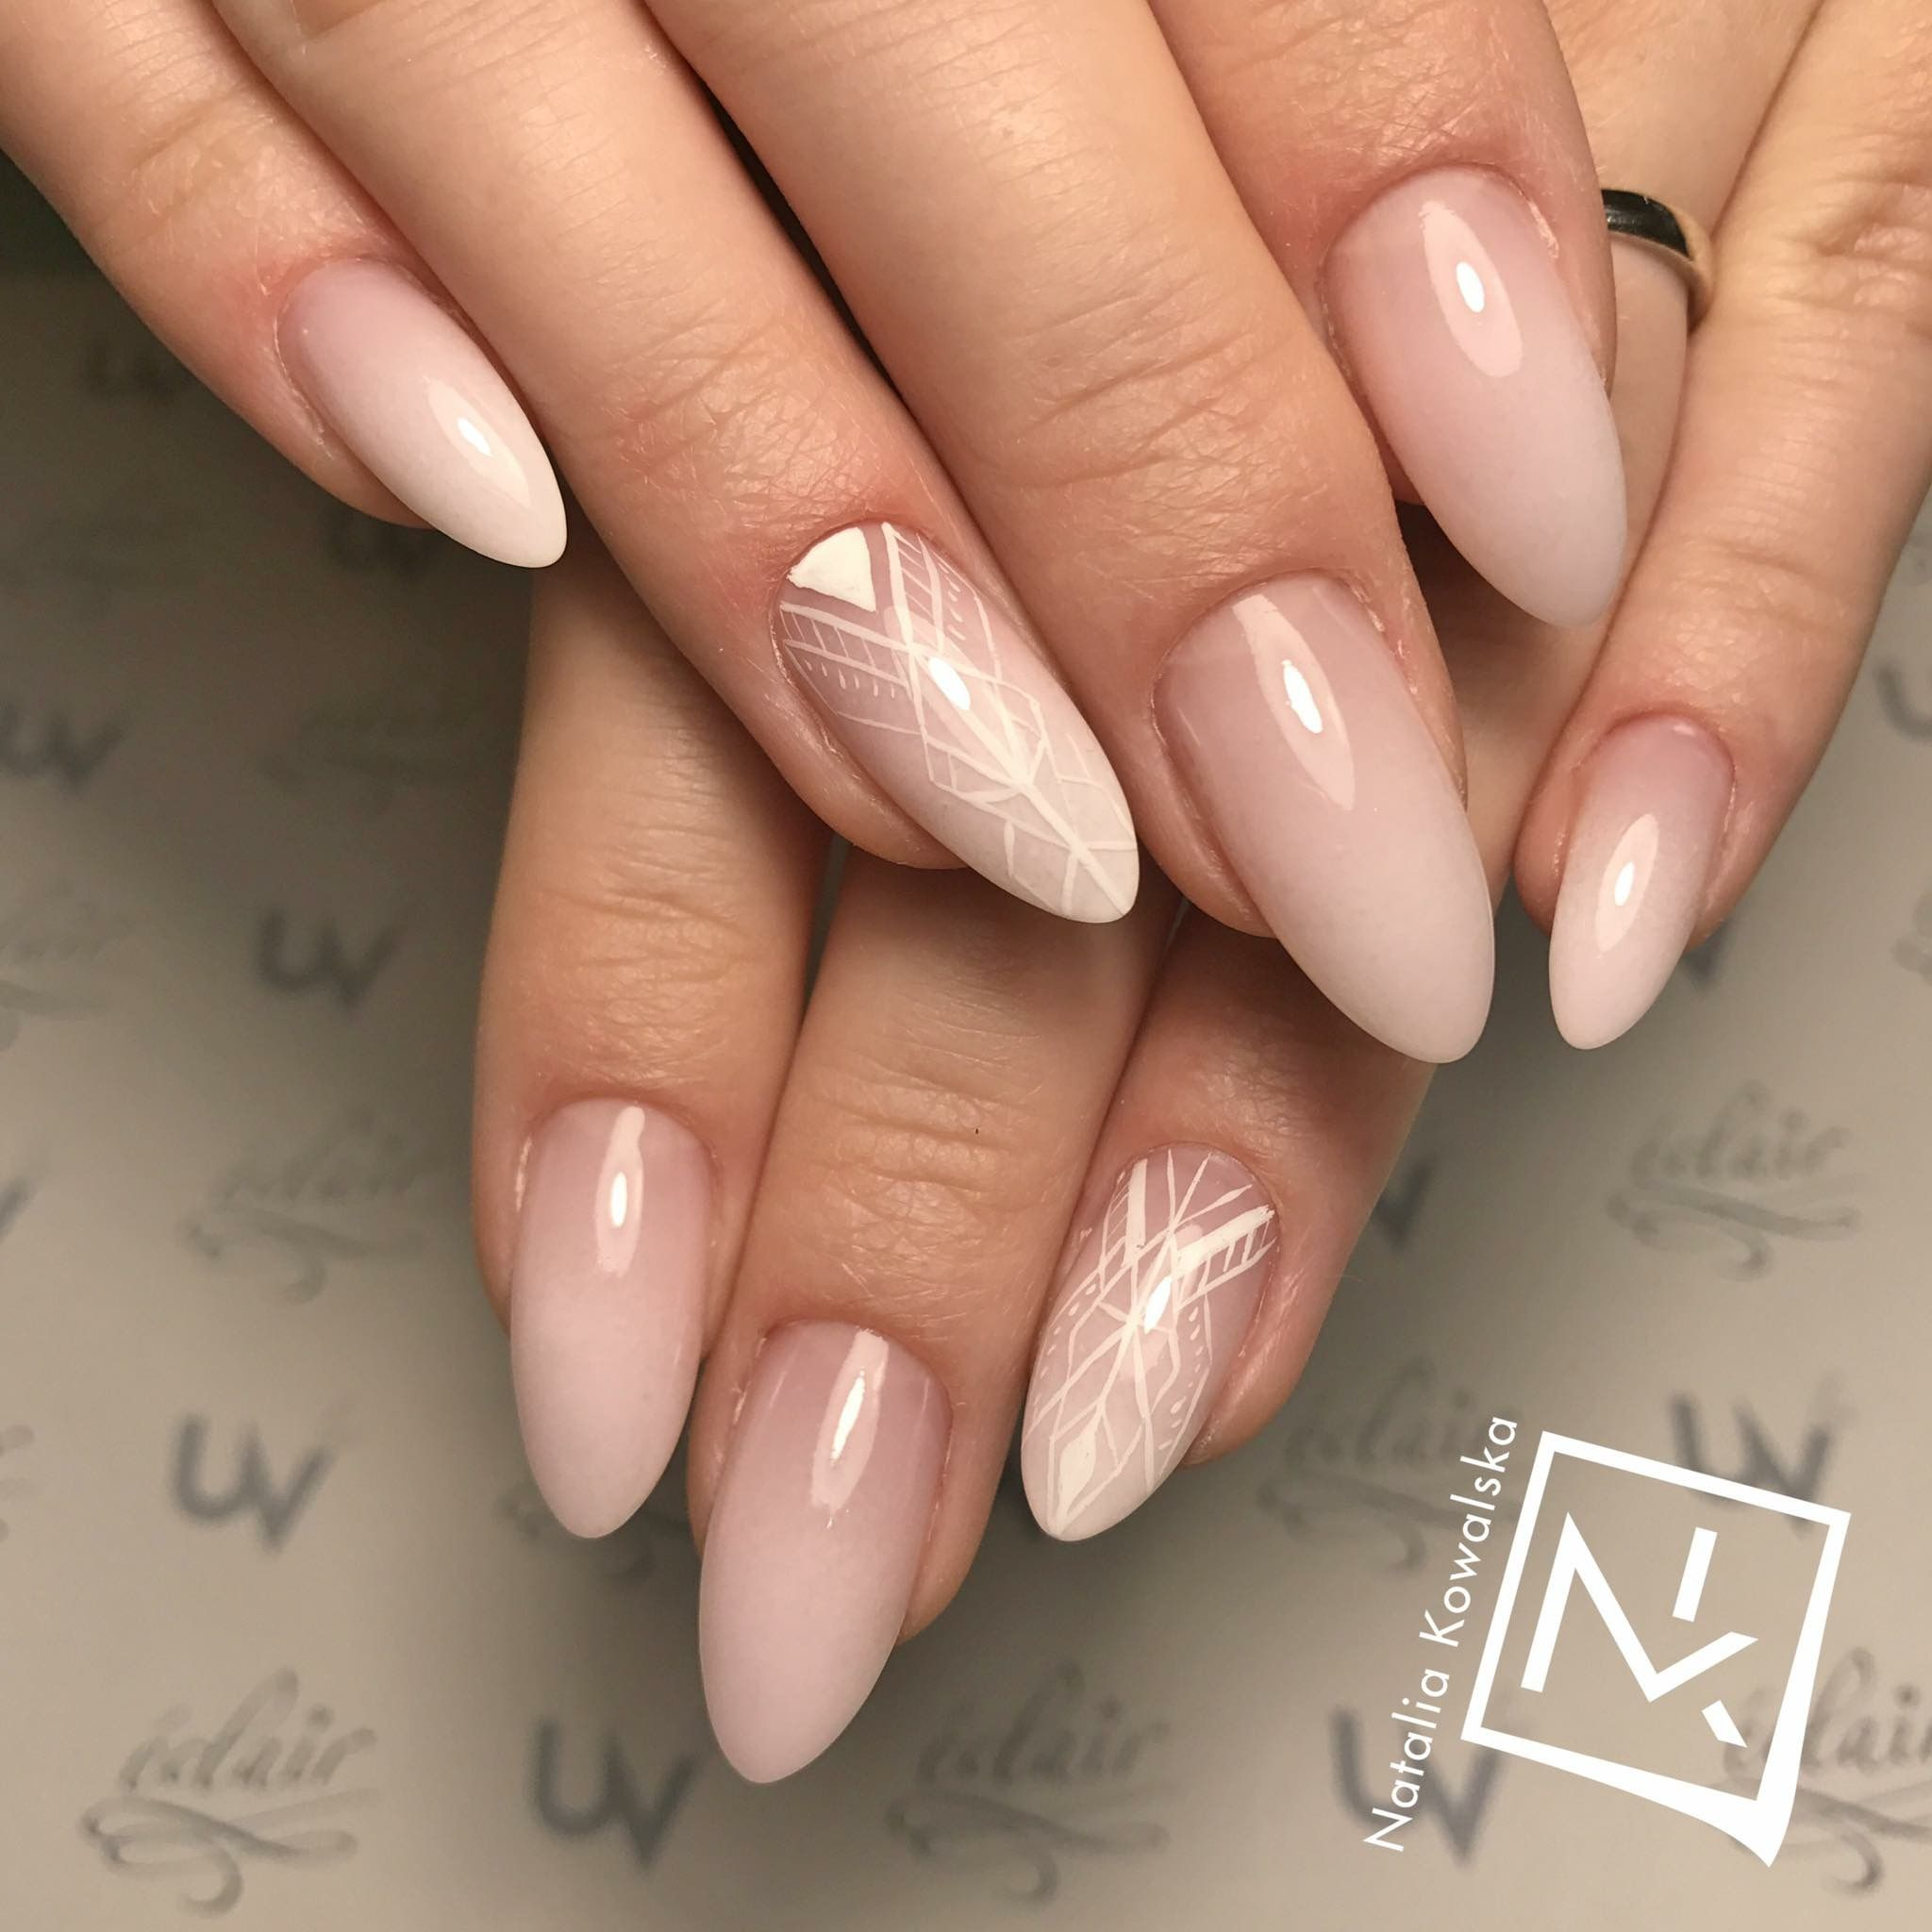 Manicure Paznokcie W 2019 Wedding Nails Bride Nails I Manicure